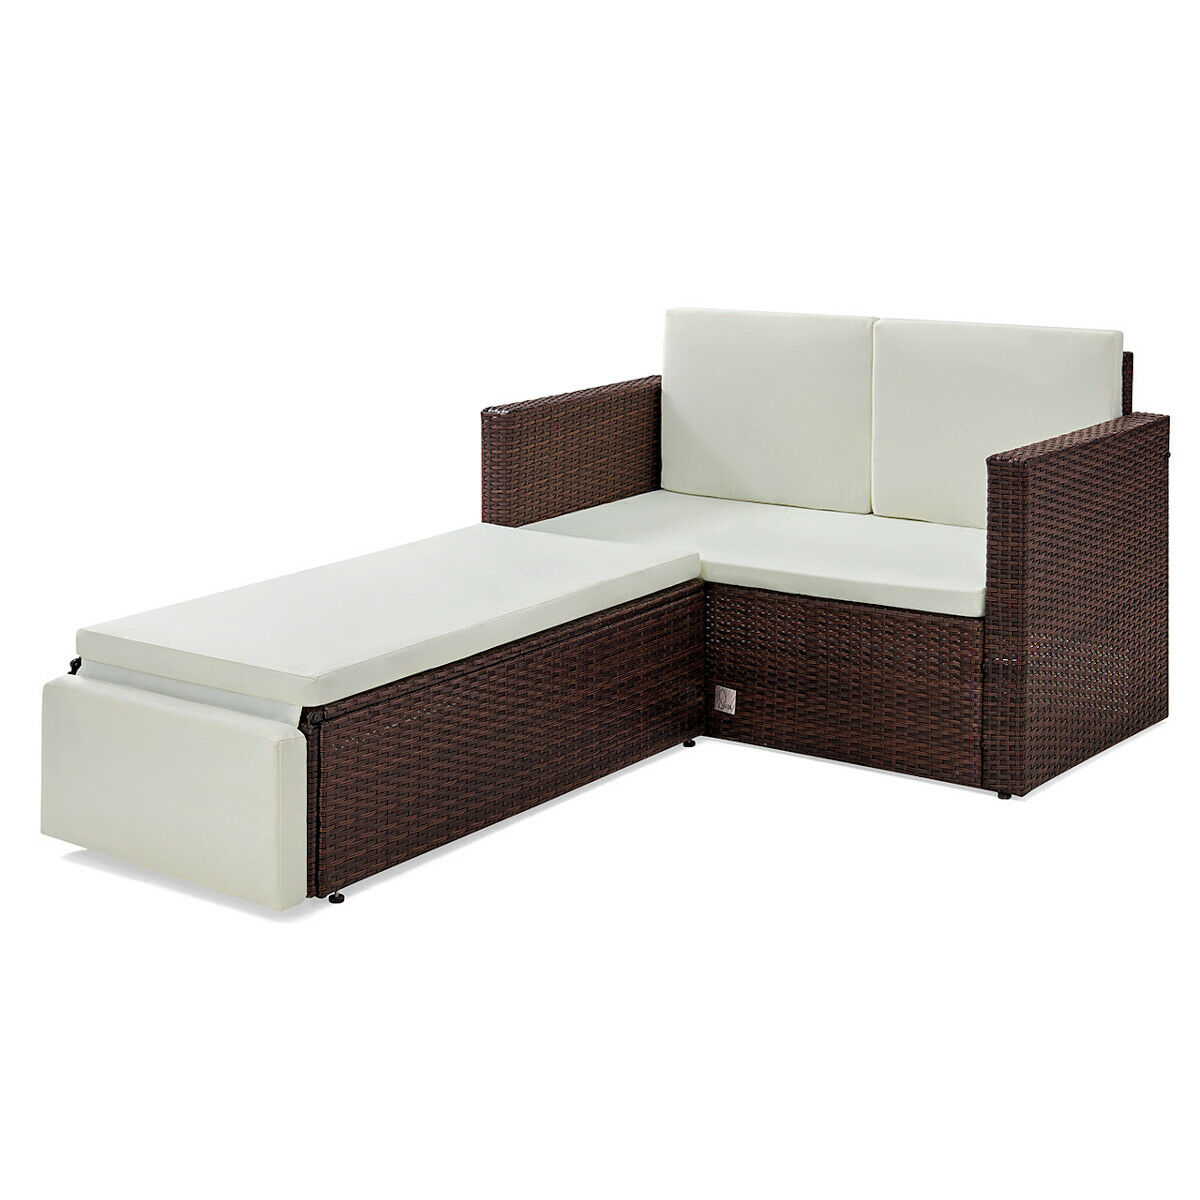 poly rattan lounge braun sofa garnitur garten polyrattan. Black Bedroom Furniture Sets. Home Design Ideas